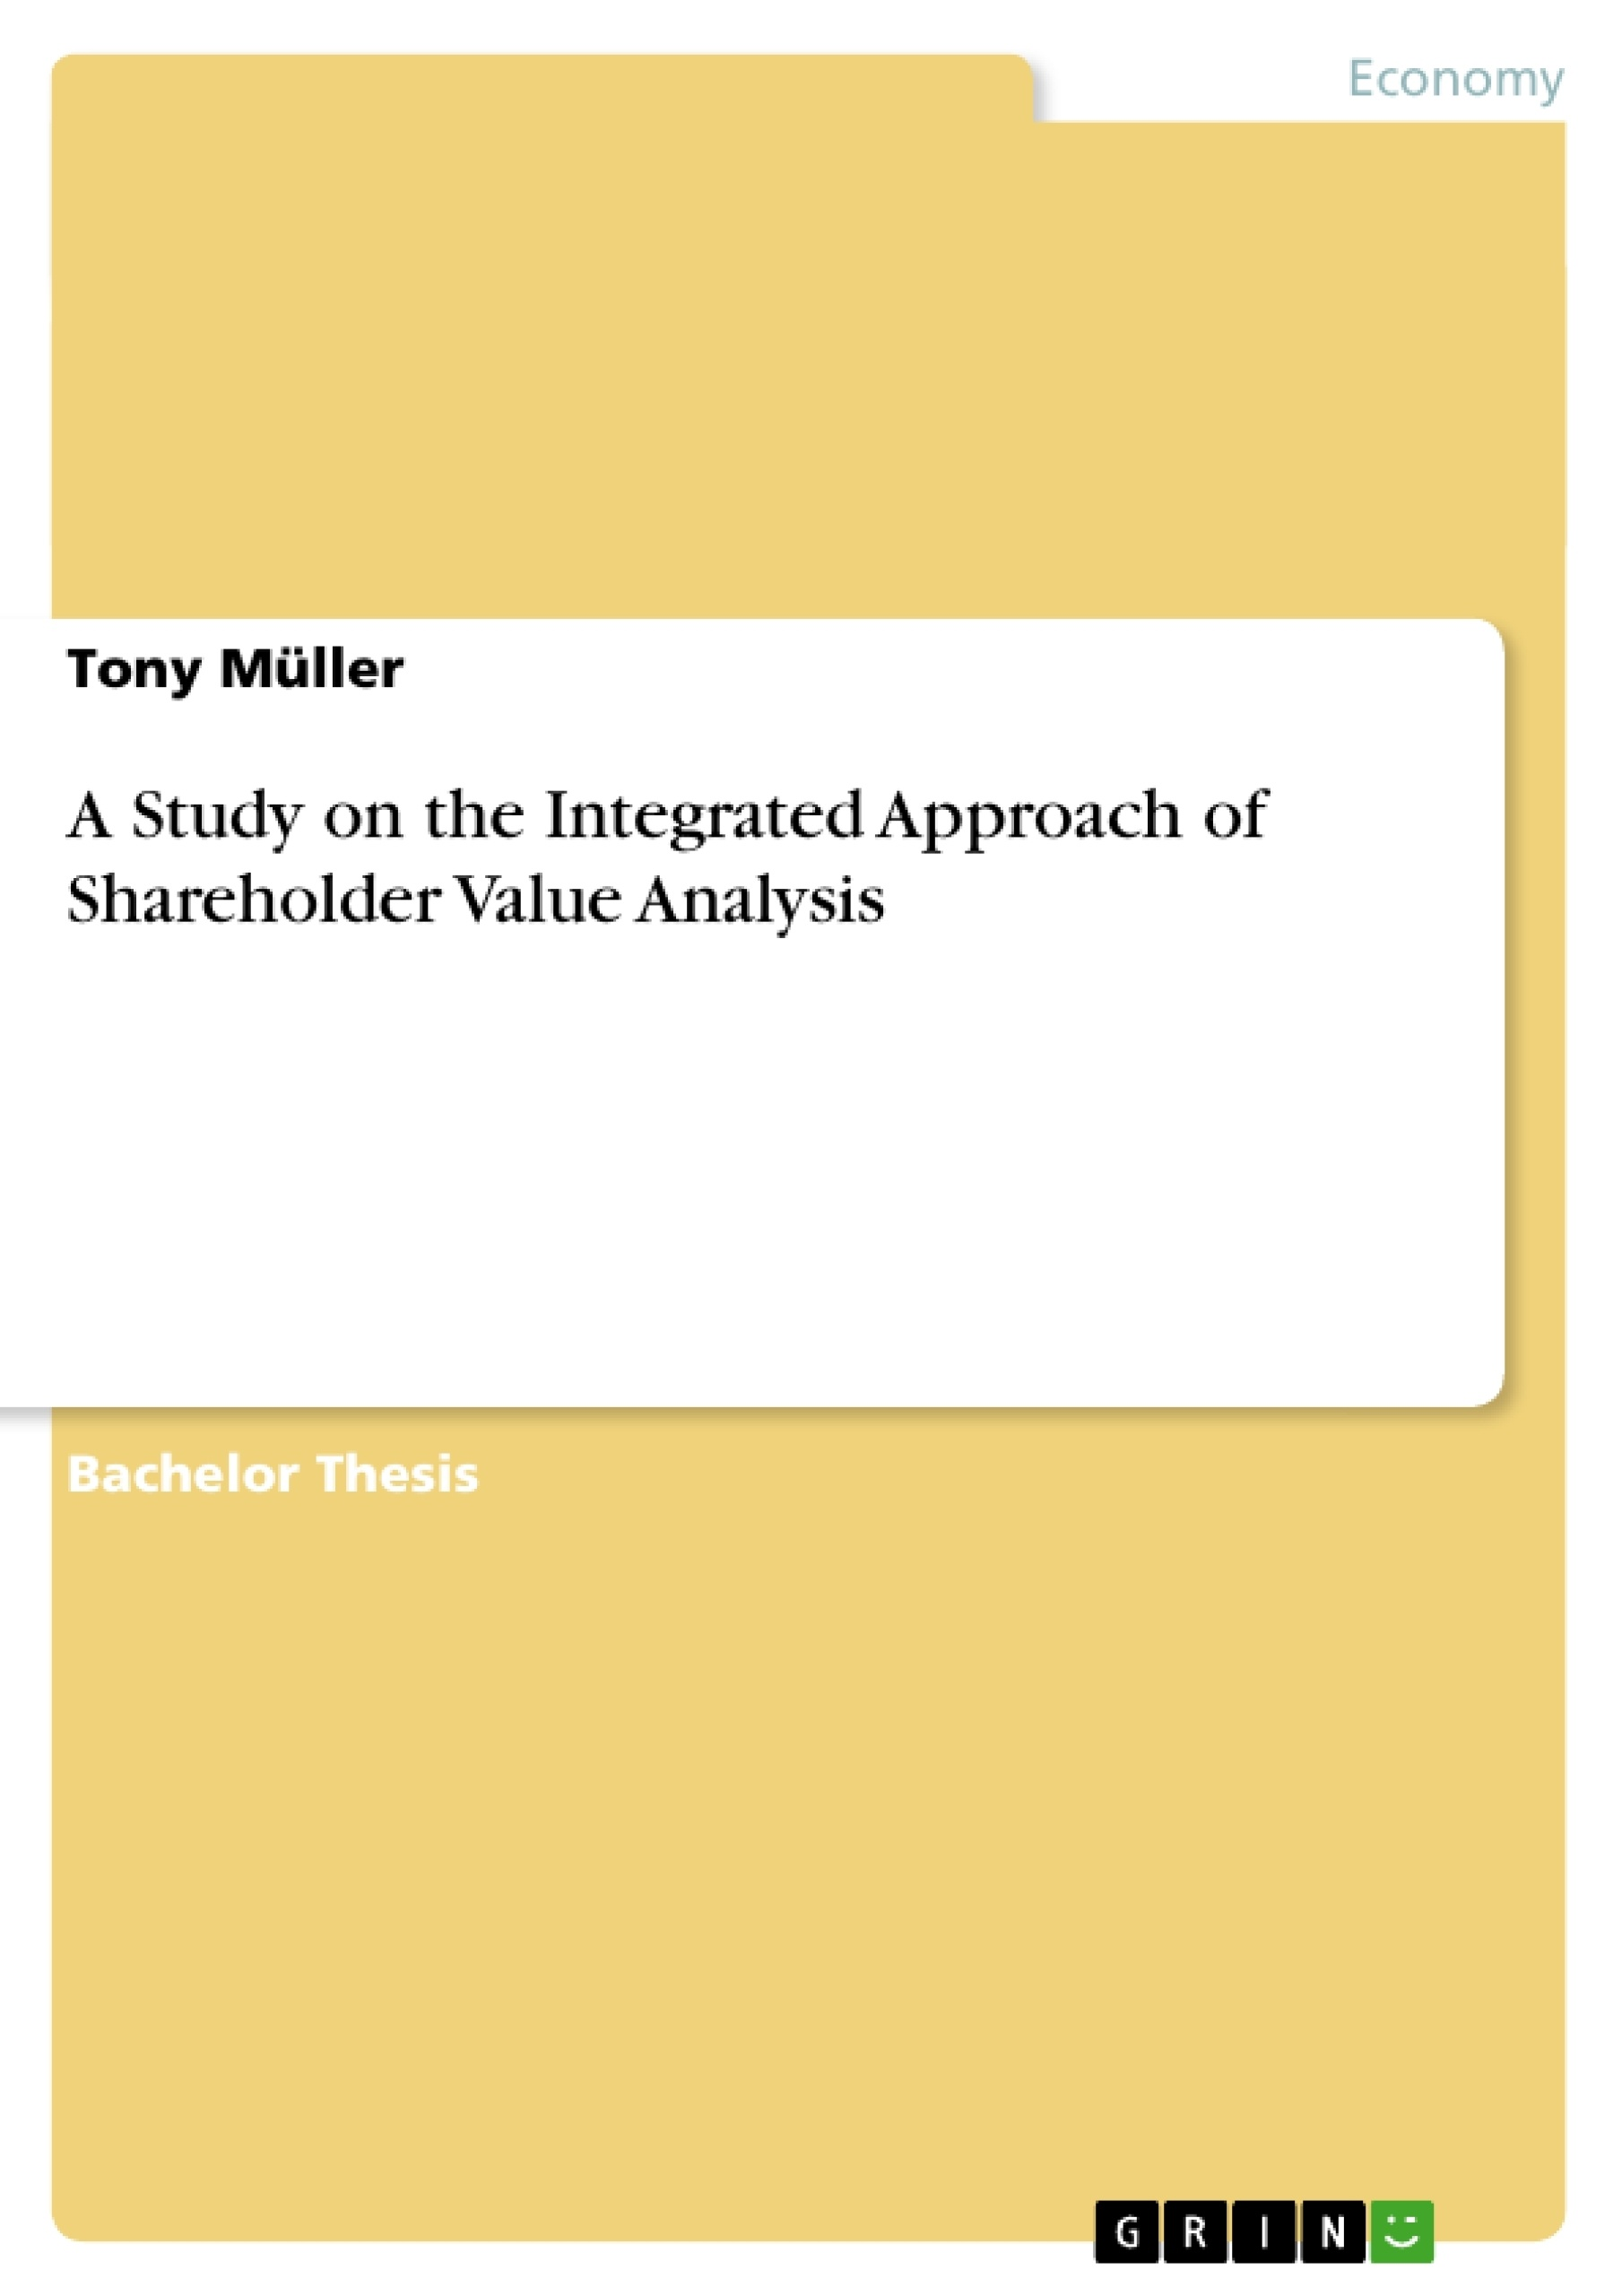 GRIN - A Study on the Integrated Approach of Shareholder Value Analysis